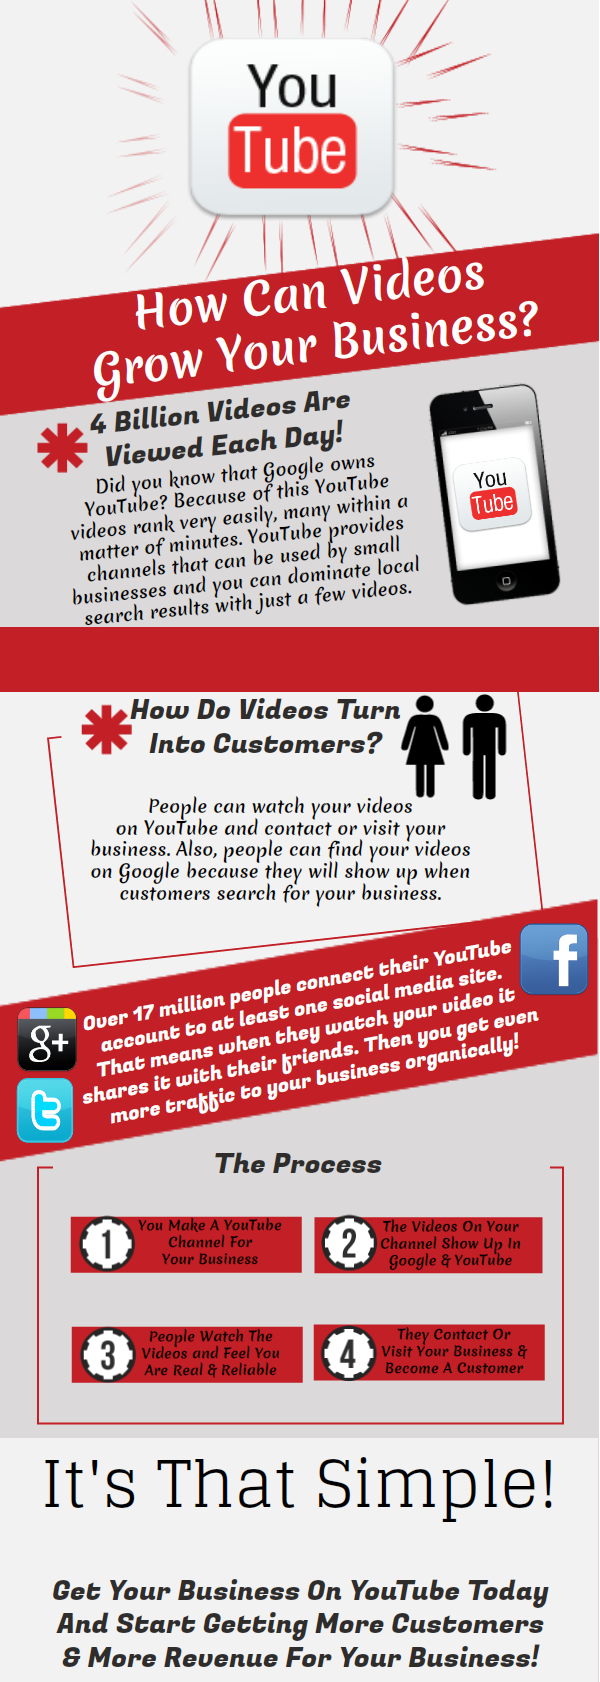 Turn infographic into video